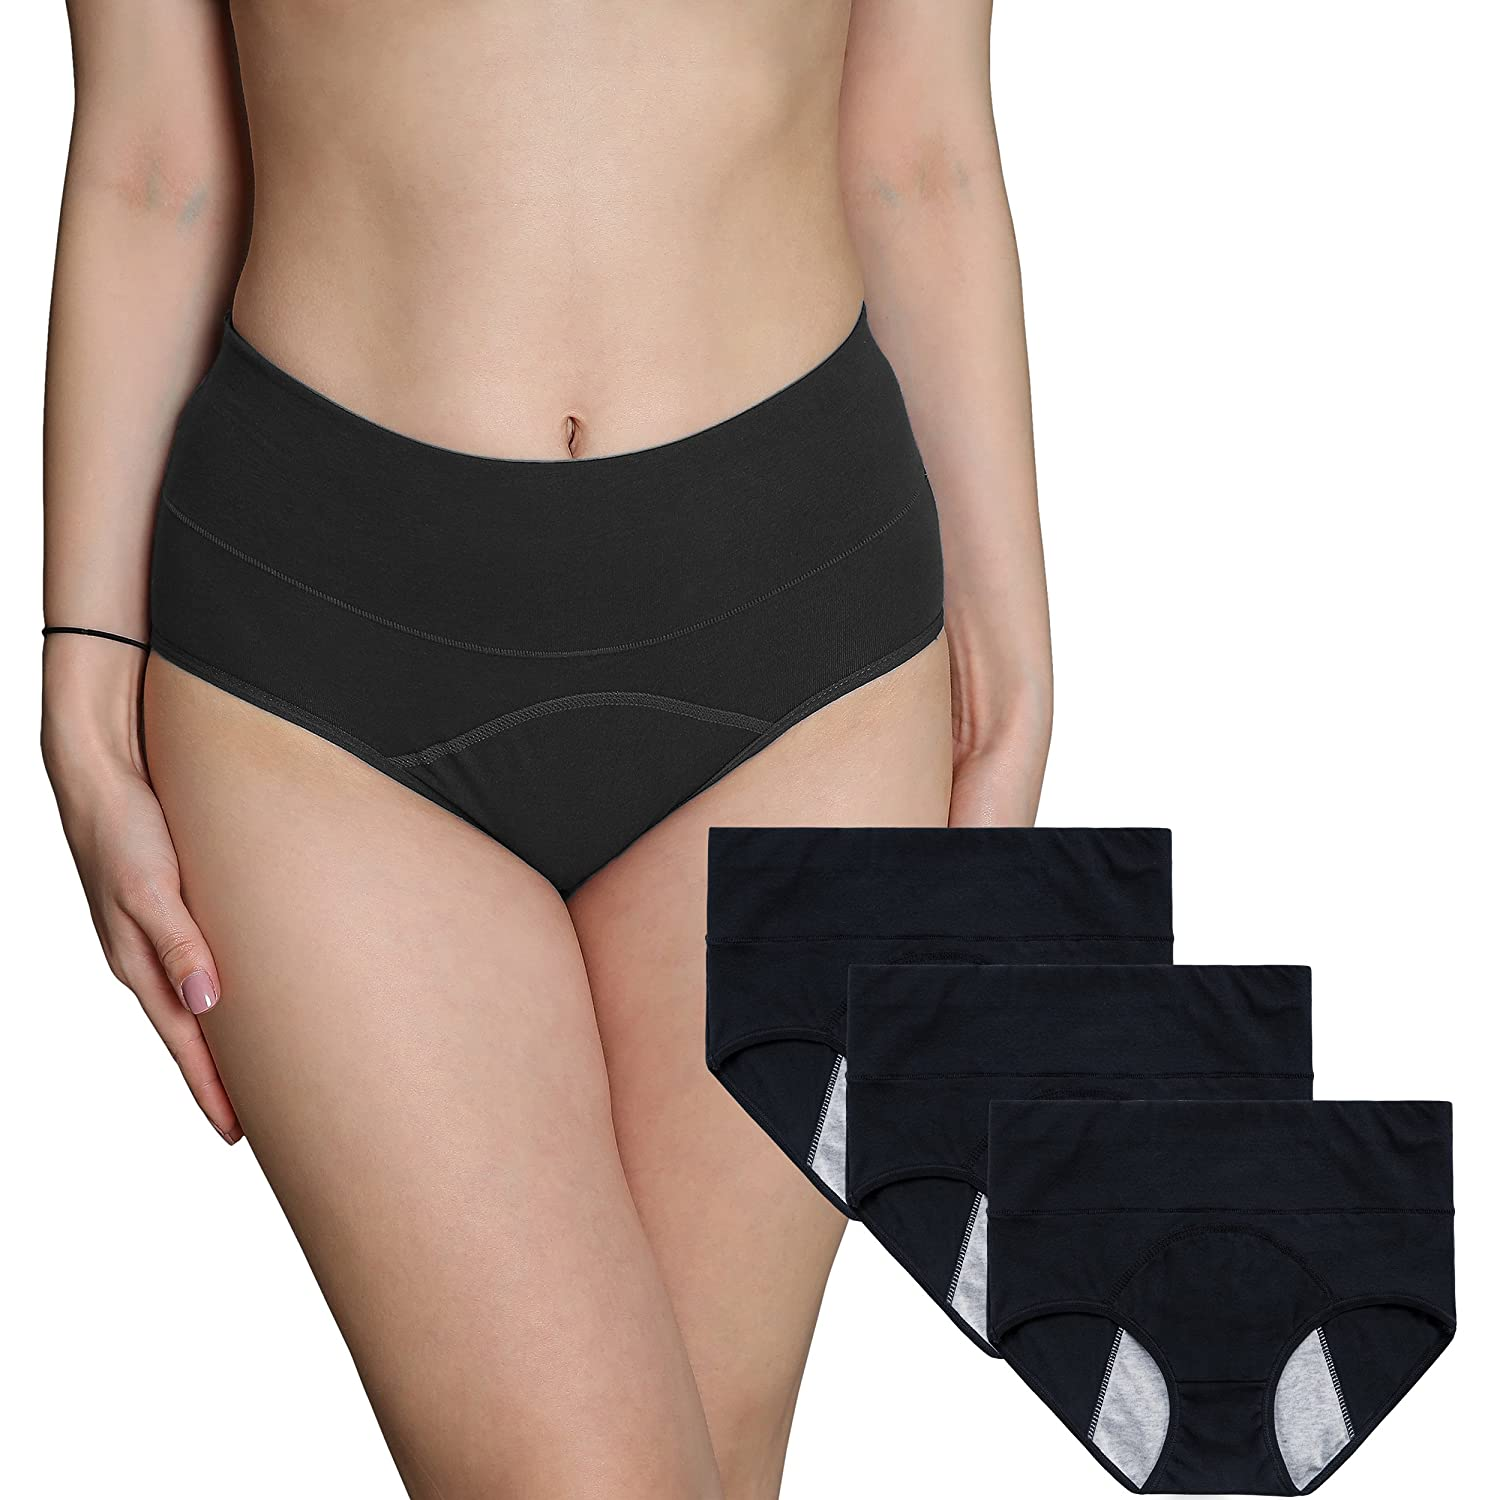 Innersy 3Pack Women Underwear Postpartum Menstrual Period Briefs Leakproof Protective Organic Cotton Knickers(Must Use with Tampons)